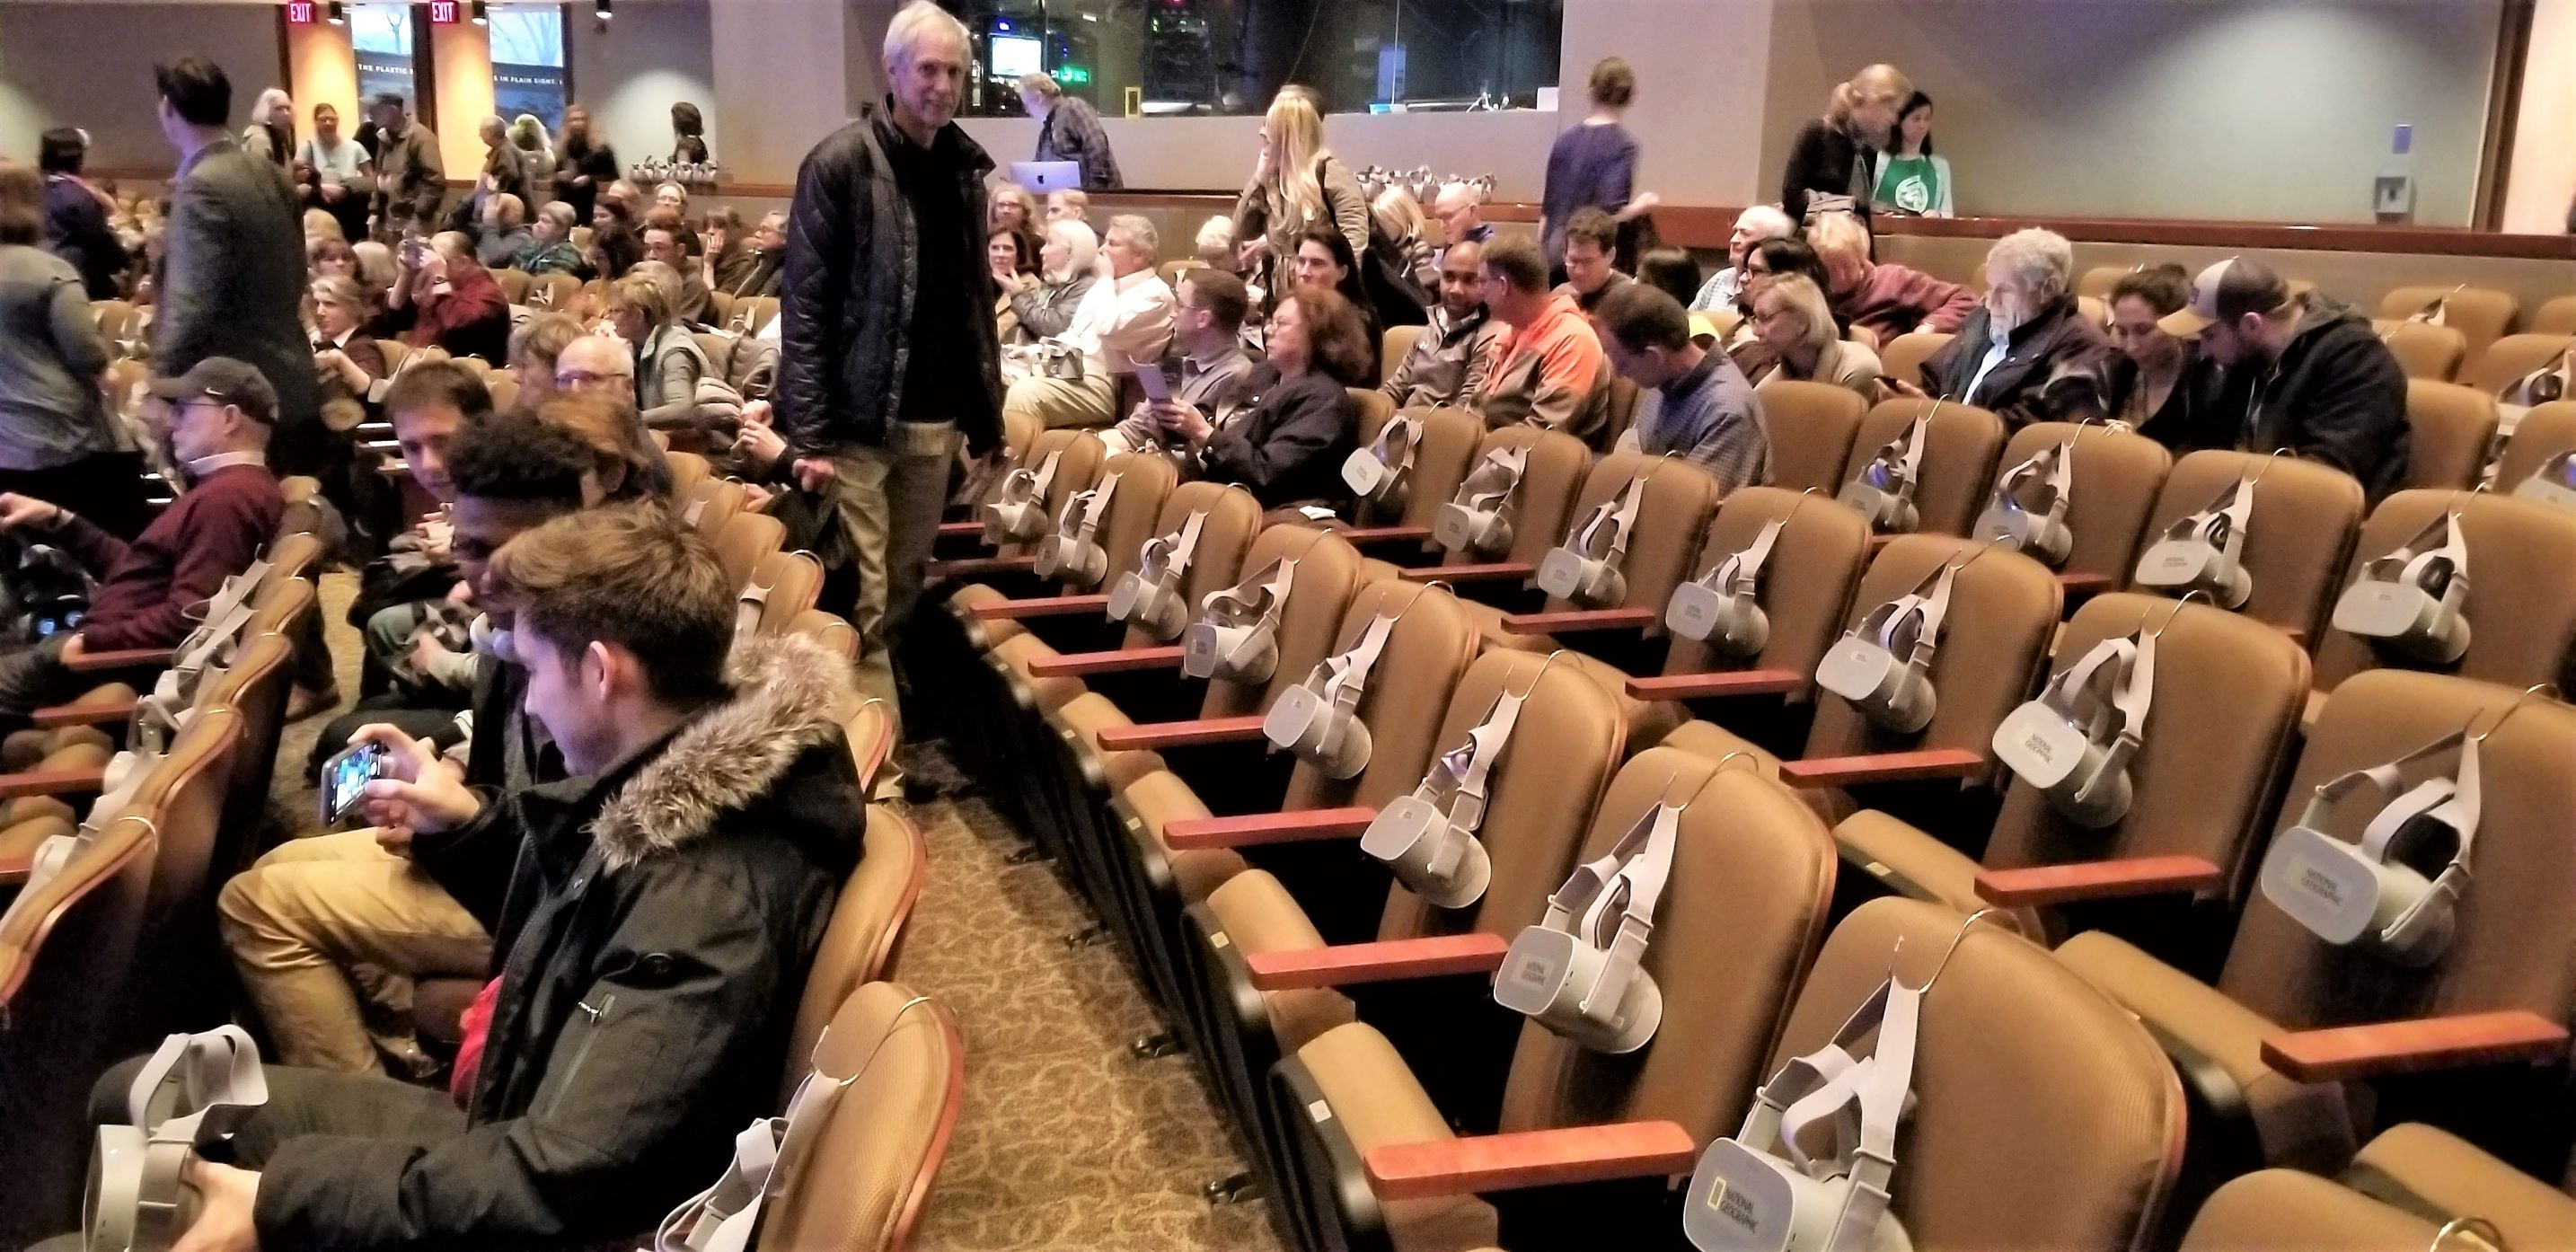 The VR-equipped auditorium at National Geographic. The use by a well-financed NGO of standard $200 Oculus Go goggles hooked onto the backs of the chairs demonstrates that groups with smaller budgets can also use VR-360 technology for their outreach efforts.